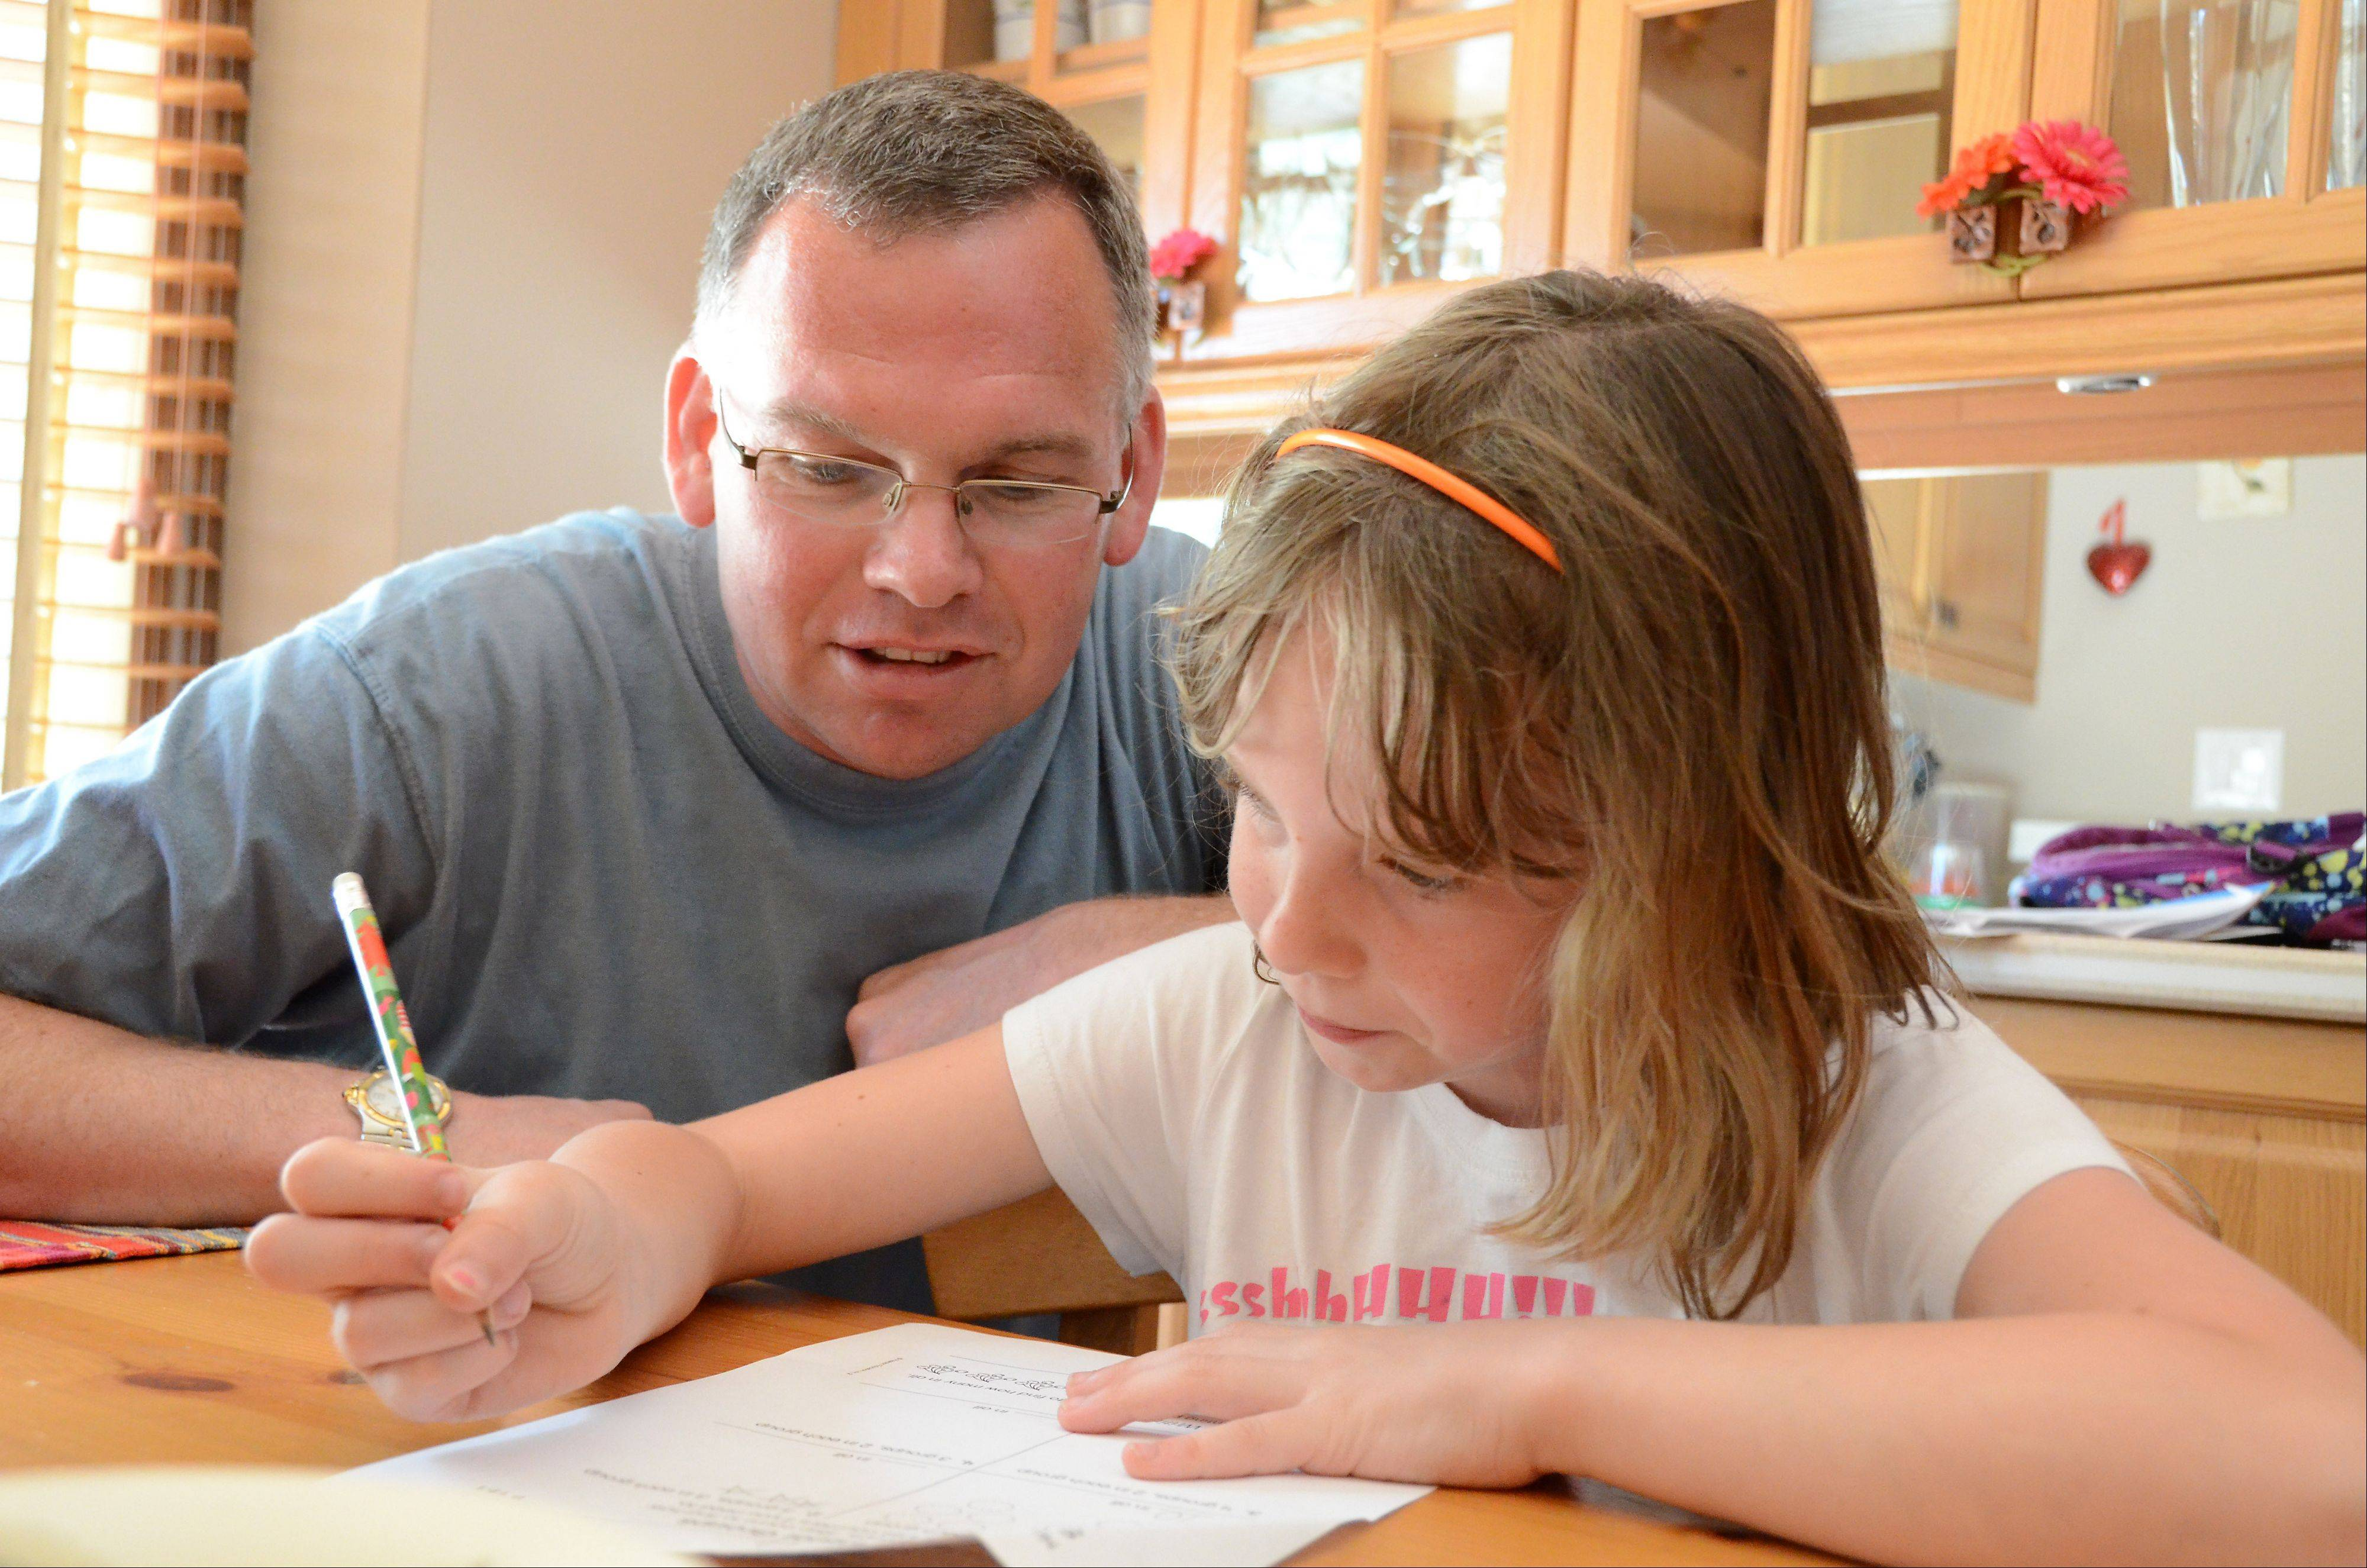 Stay-at-home dad Randy Reid works with his daughter Bella, 8, as she does her homework after school.